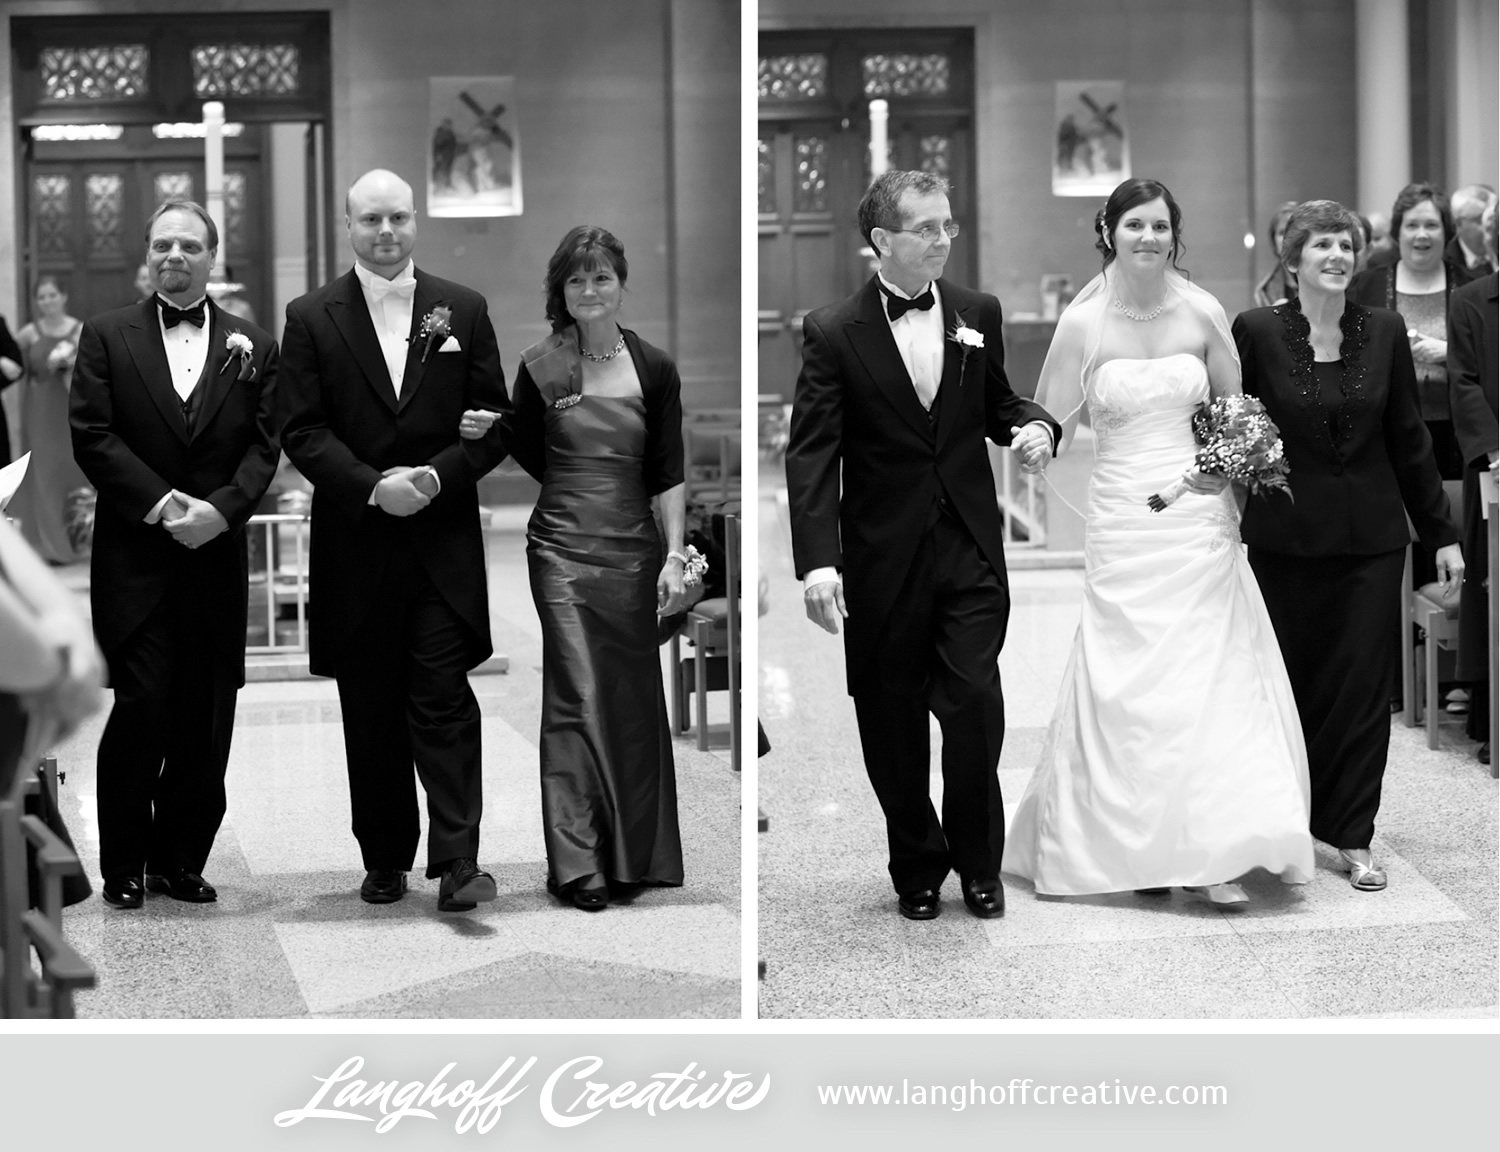 Eric and Julie were each escorted down the aisle by both of their parents. So special!